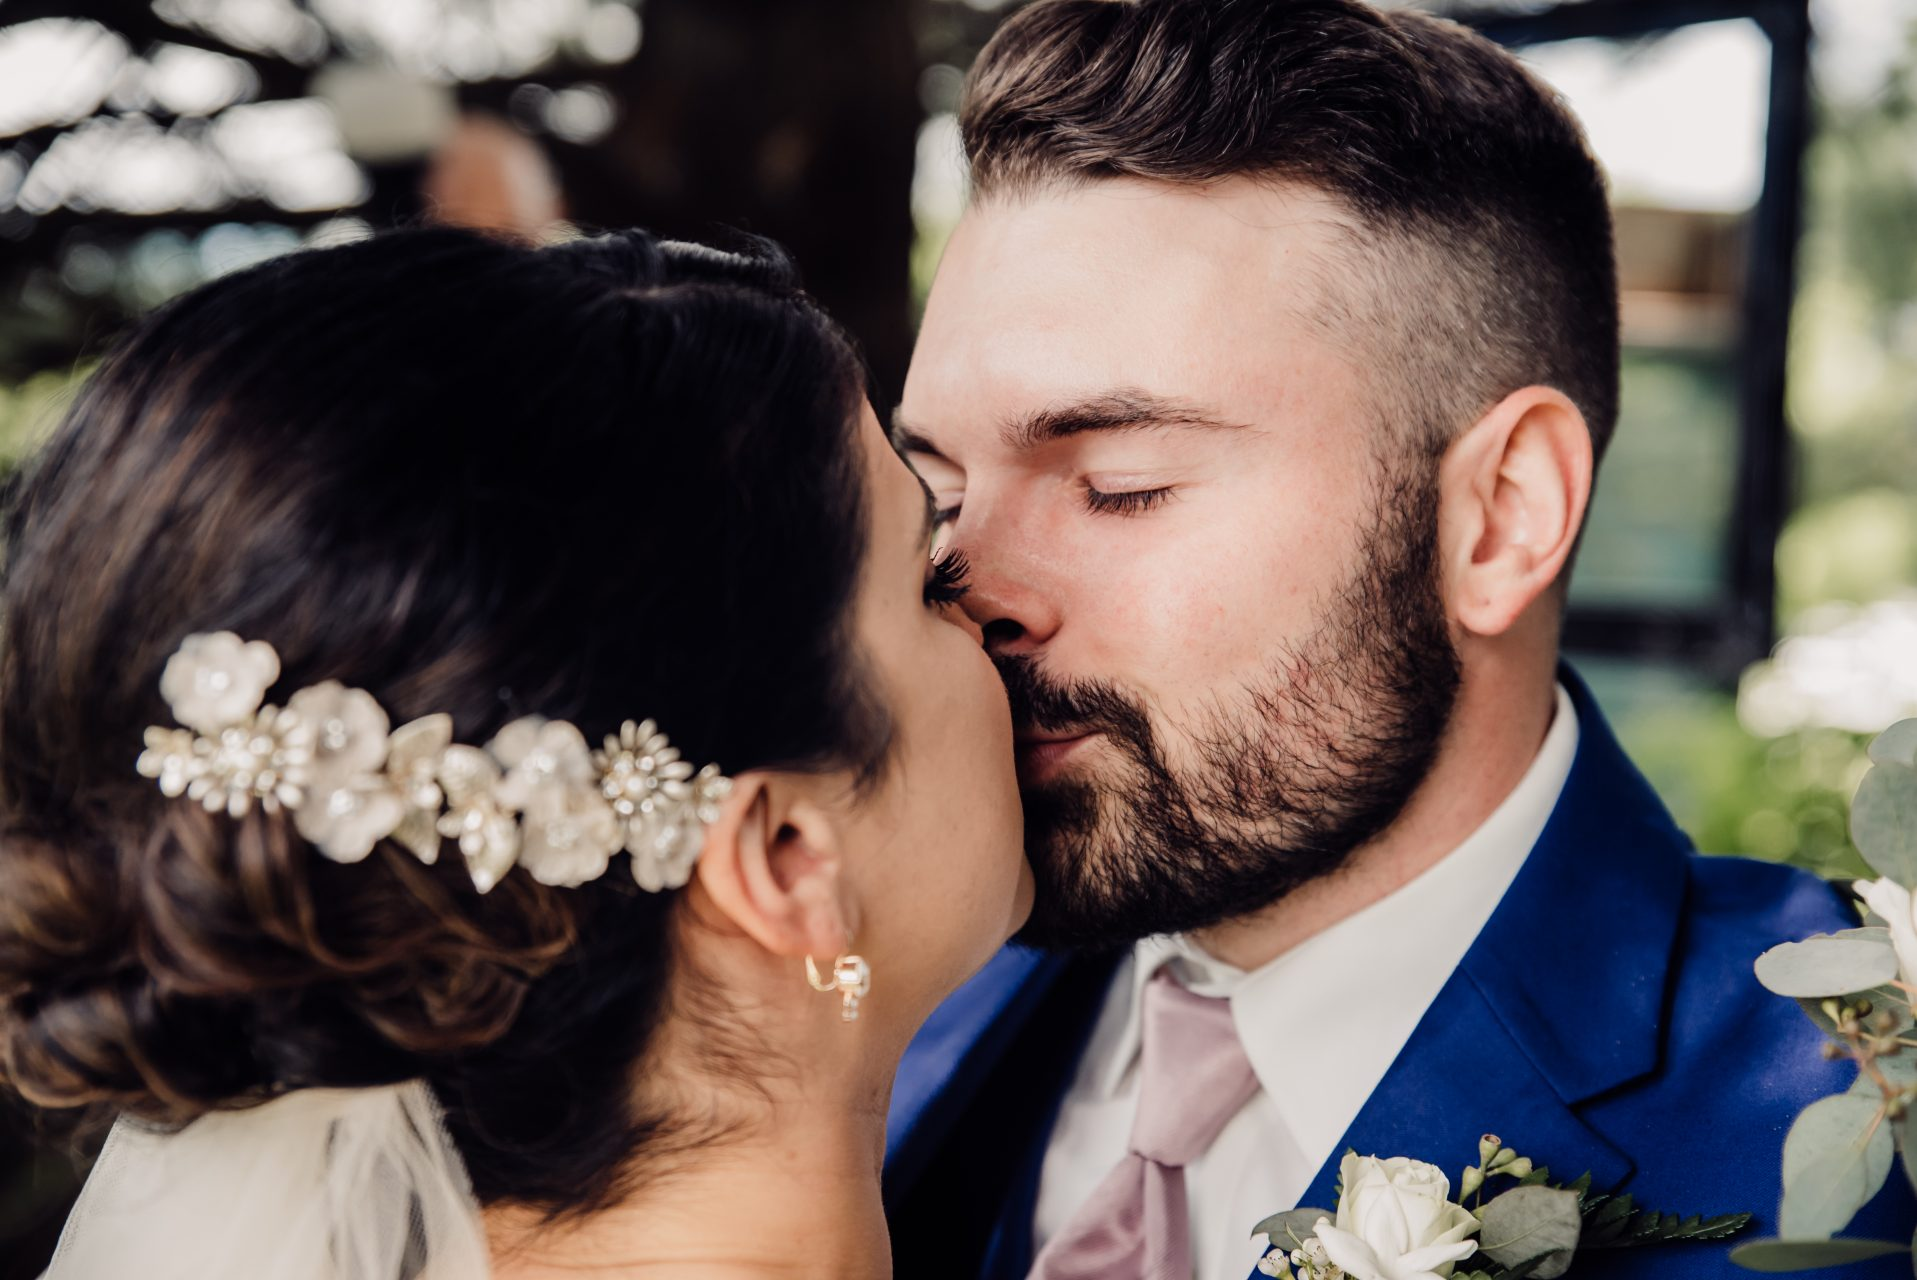 David + Maria | Wedding at The Place At 534 | Bride and Groom First Look Kiss